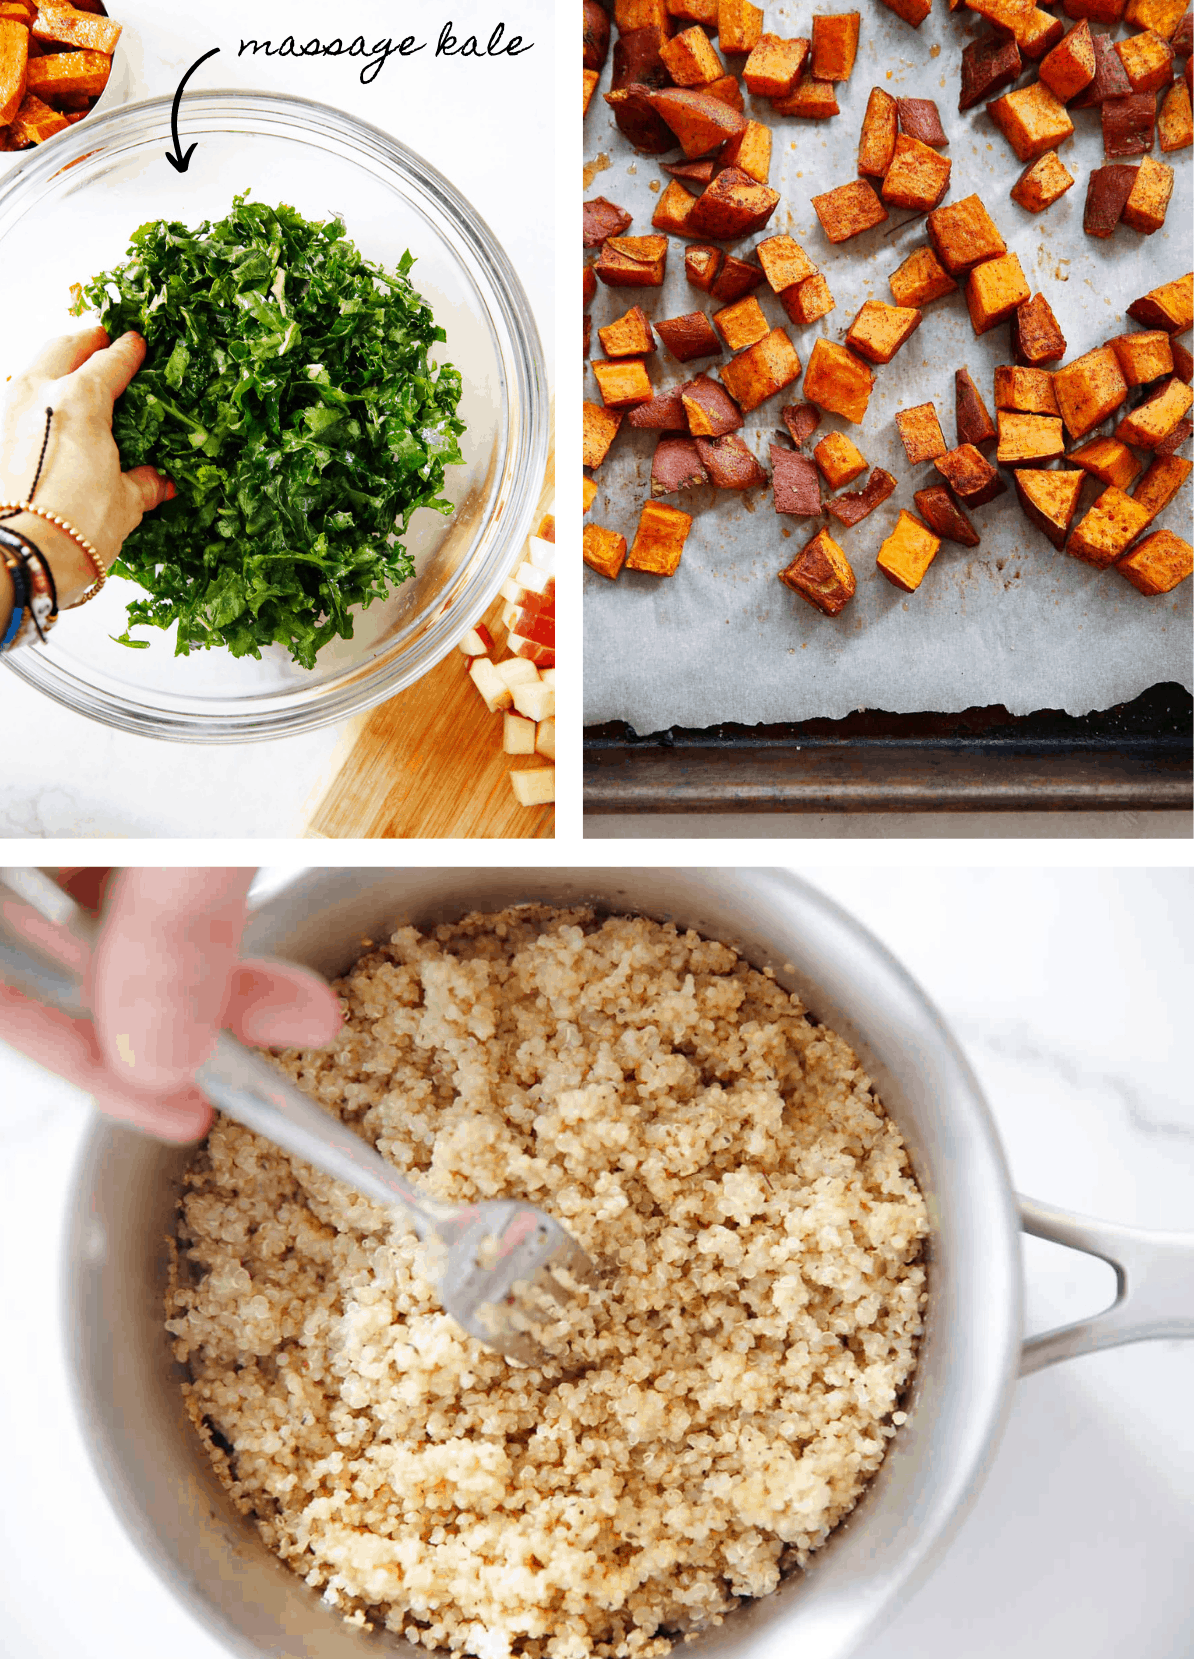 Ingredients for Kale Quinoa Salad with sweet potatoes